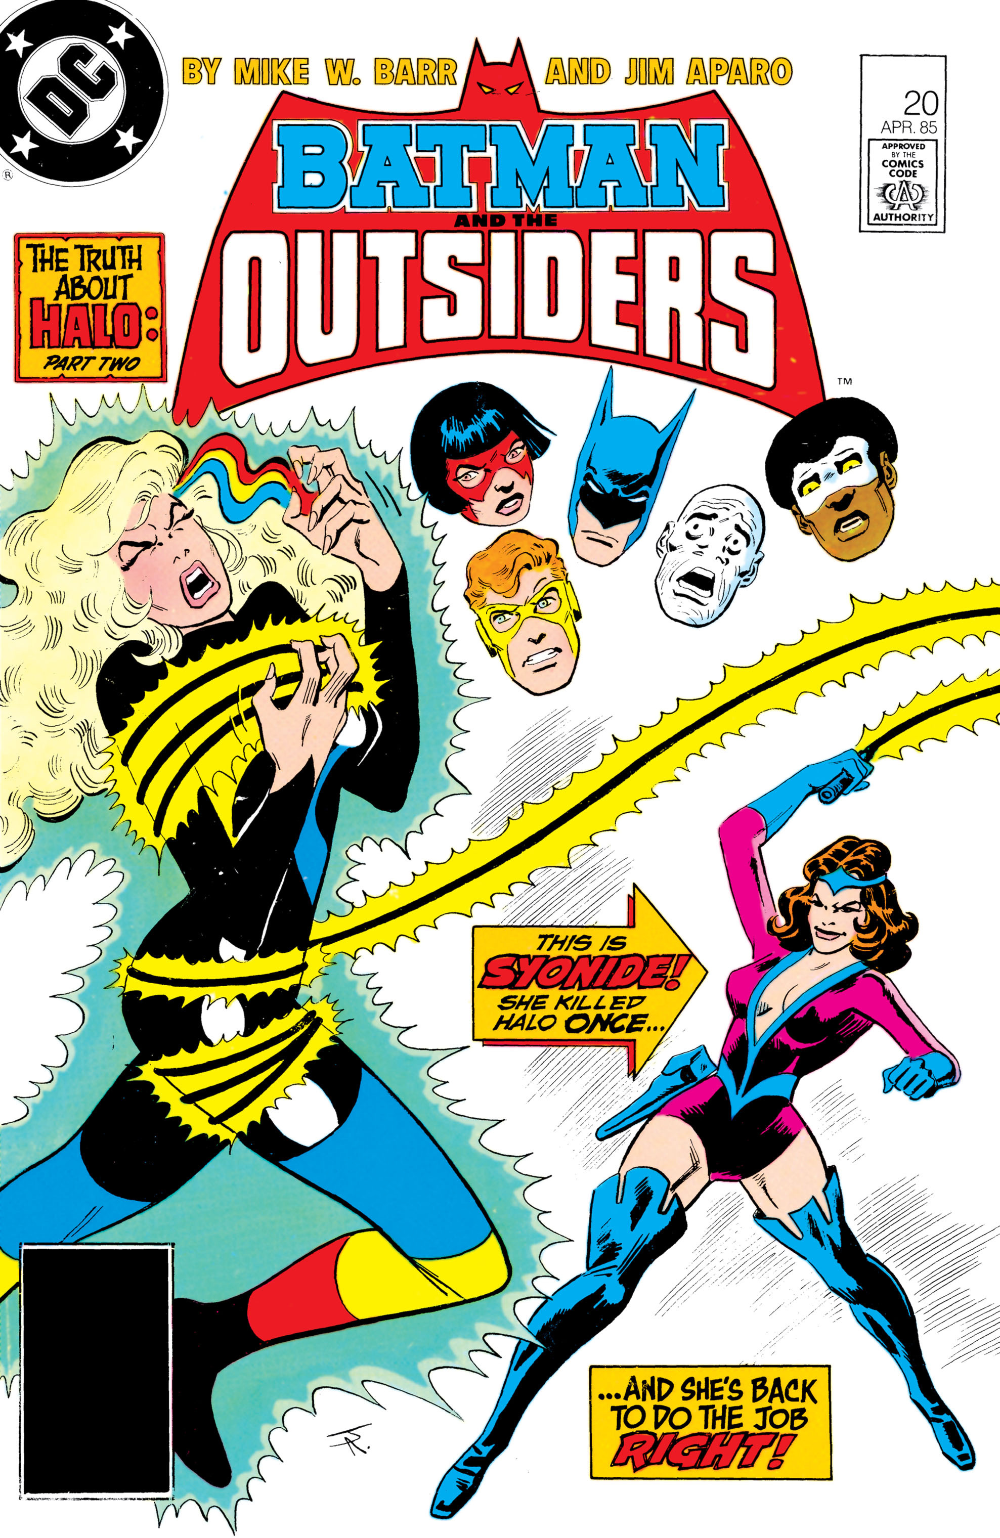 Batman And The Outsiders 1983 Issue 20 Read Batman And The Outsiders 1983 Issue 20 Comic Online In High Quality In 2020 Comics The Outsiders Comic Books